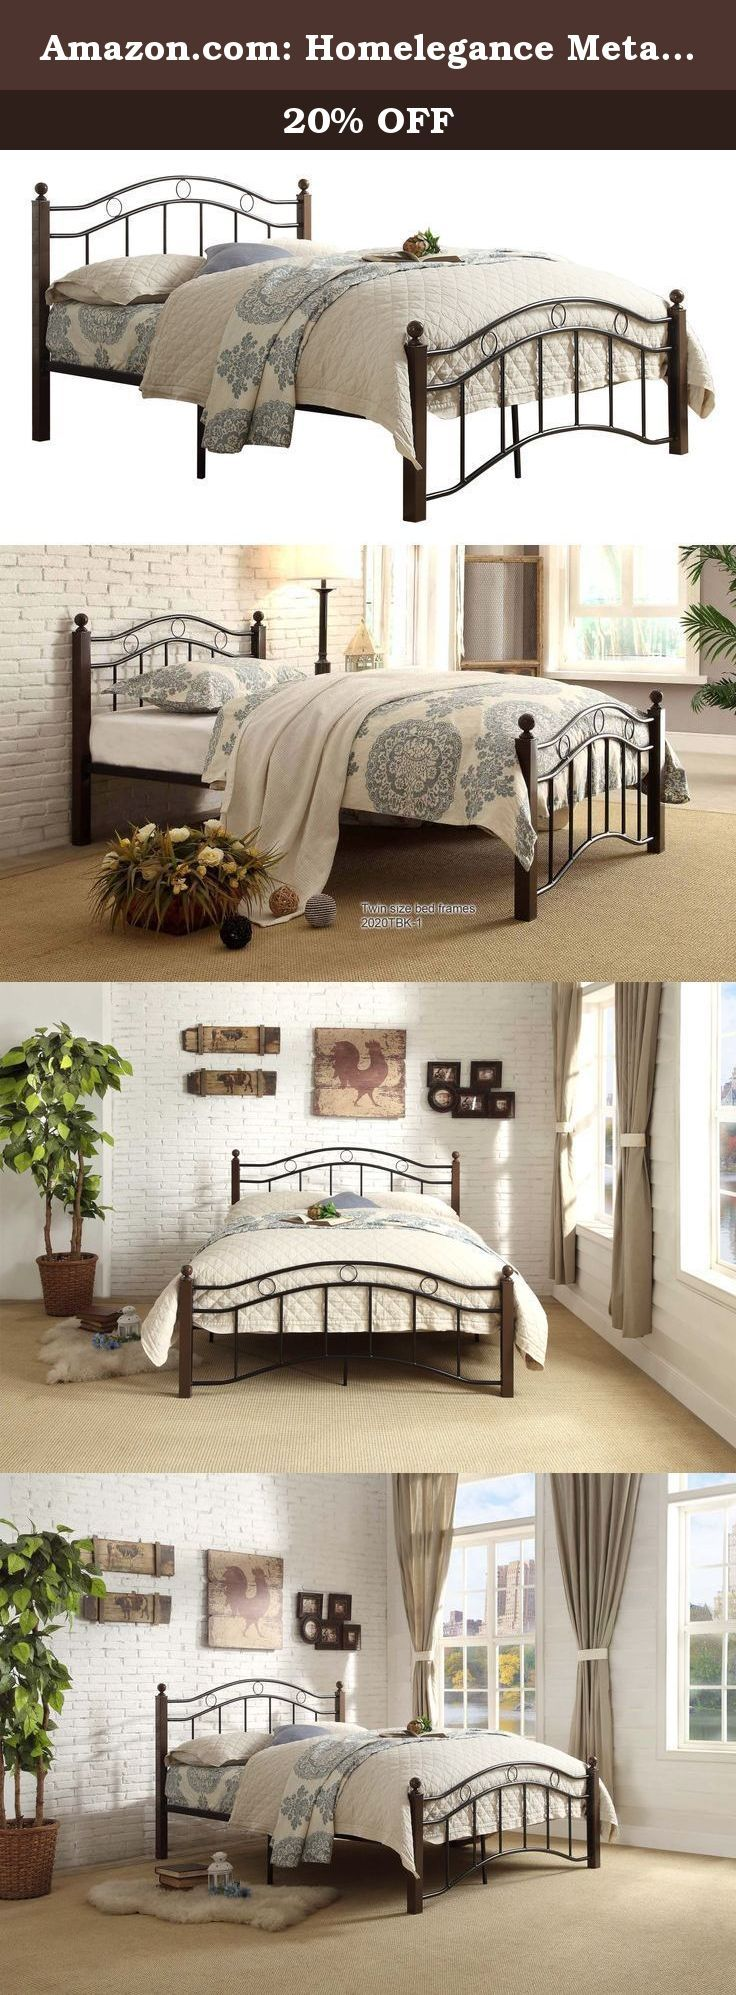 Amazon.com: Homelegance Metal Platform Bed. Avery Collection transitional style full size metal bed in black frame and chocolate brown pole 2-tone finish, Platform bed and slat kit included, no box-spring/foundation is required, Great additional to kid/guest room with limited space.